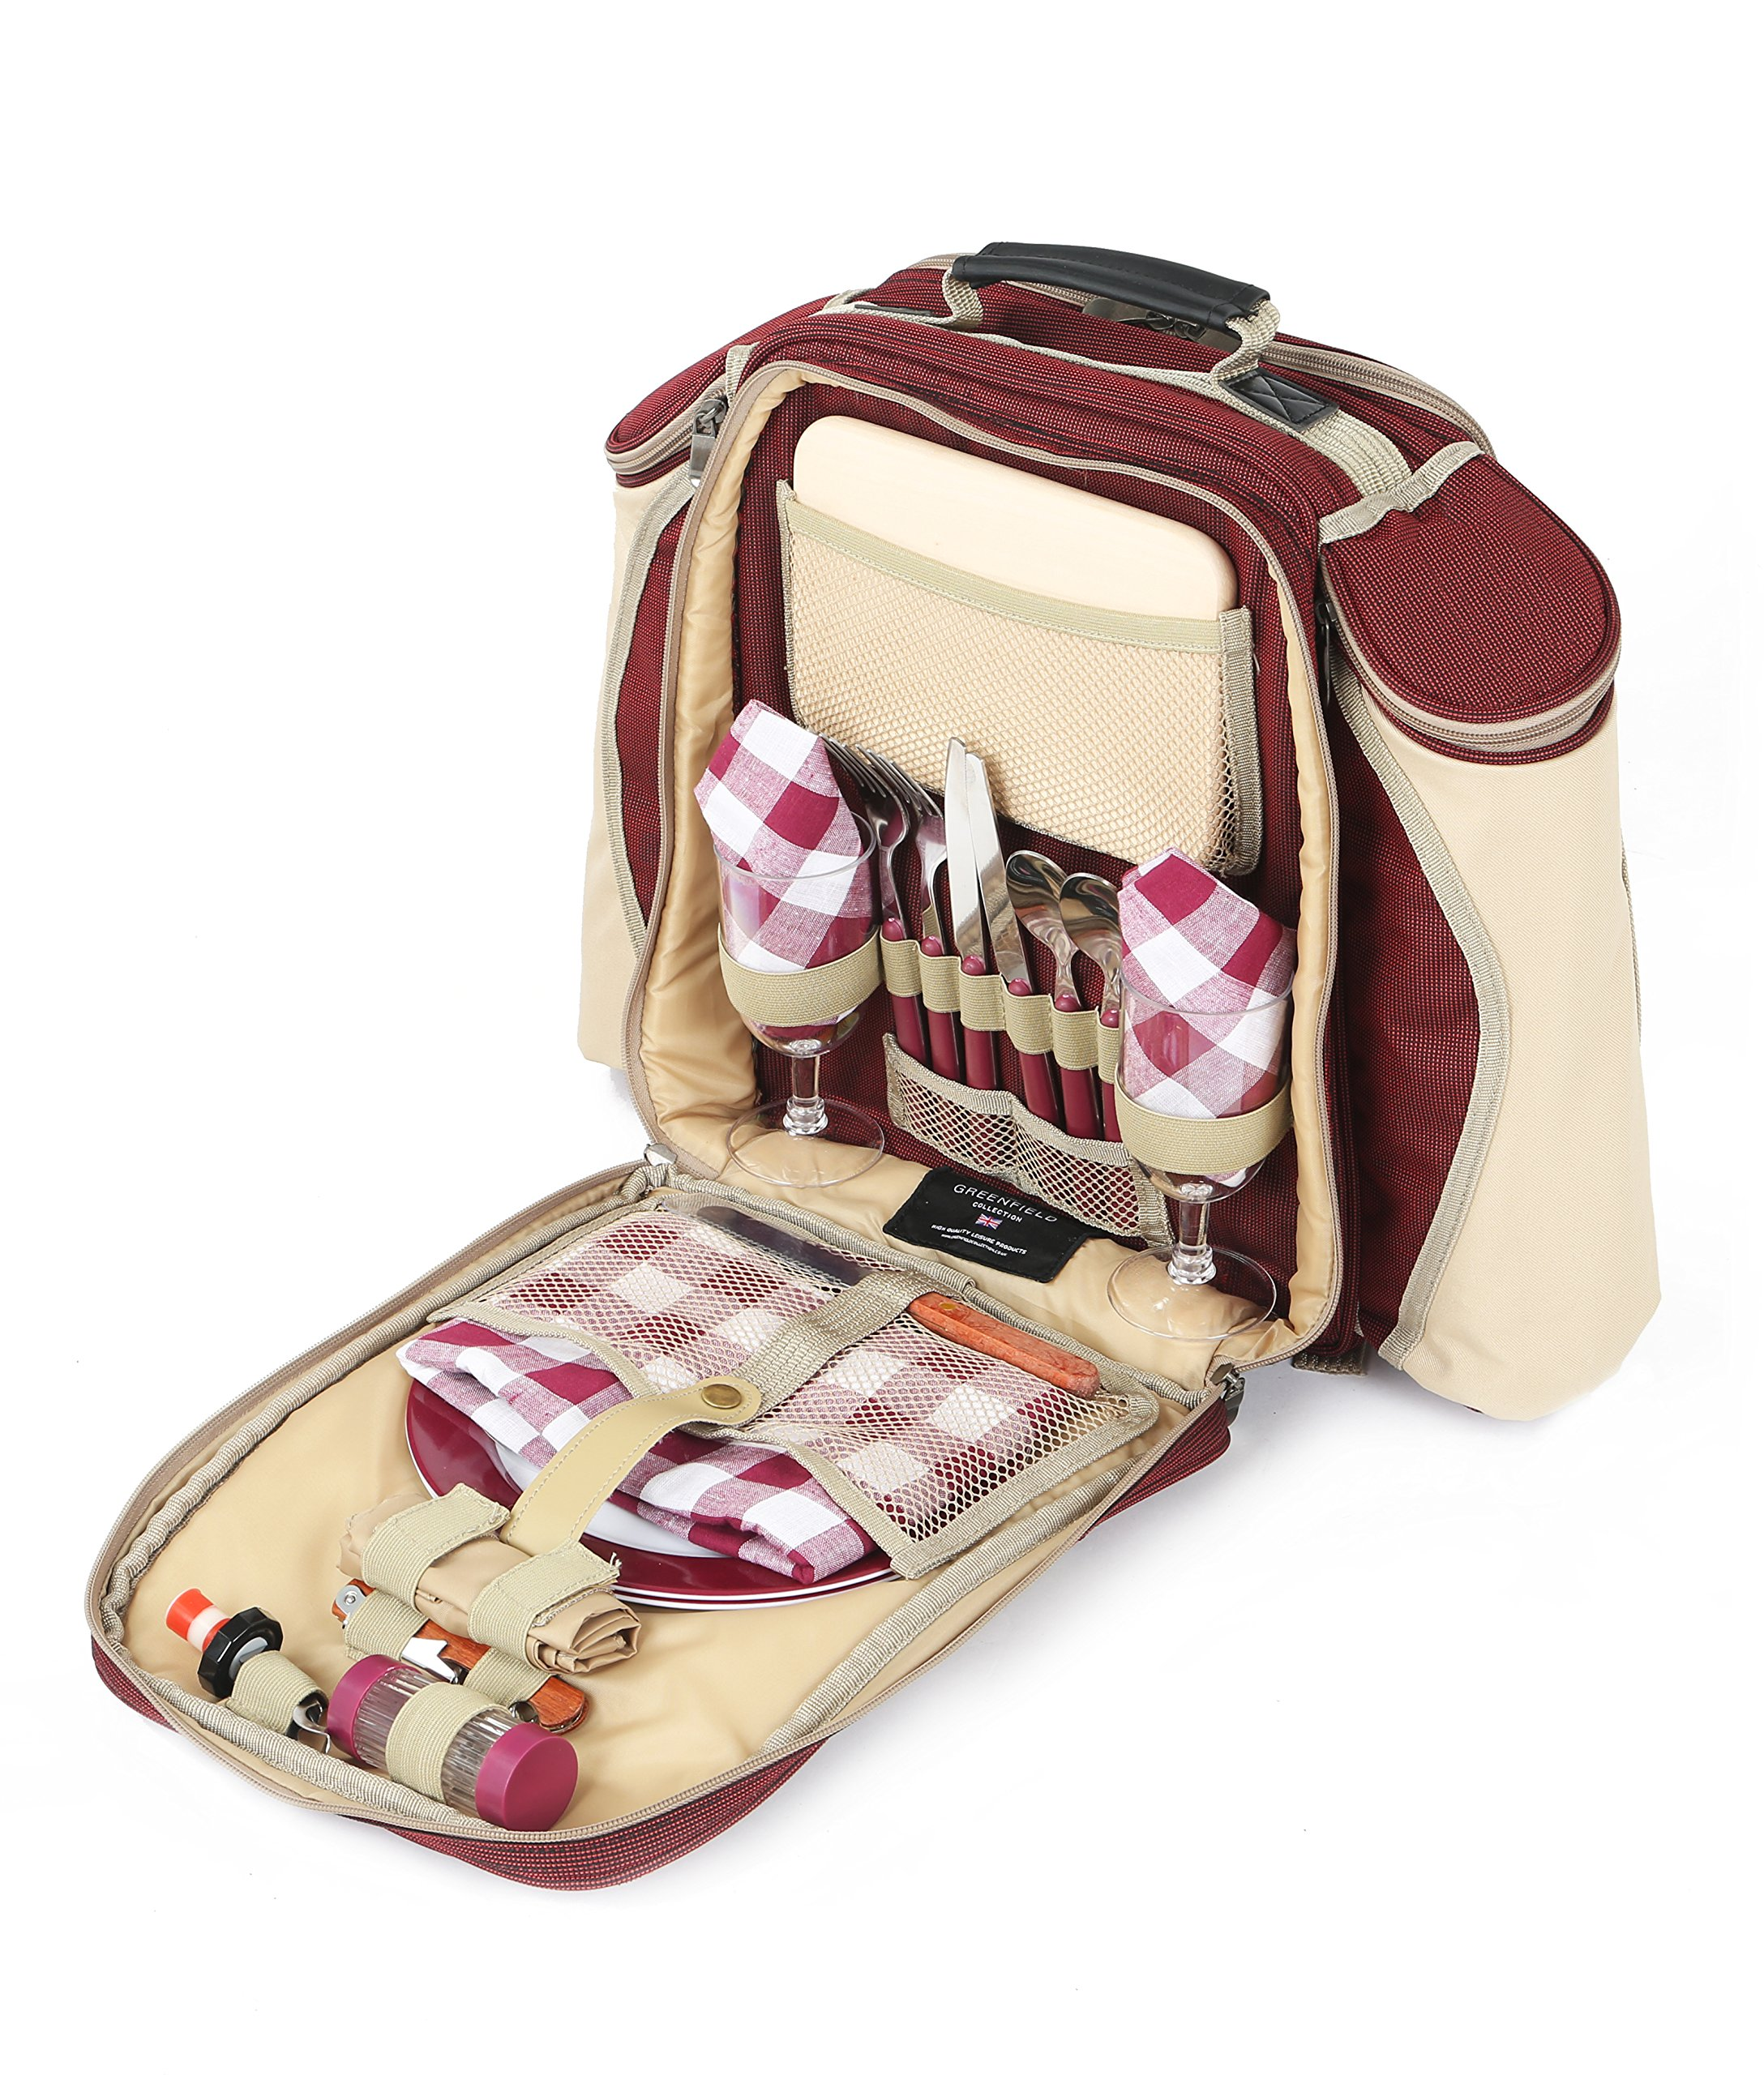 Greenfield Collection Deluxe Mulberry Red Picnic Backpack Hamper for Two People by Greenfield Collection